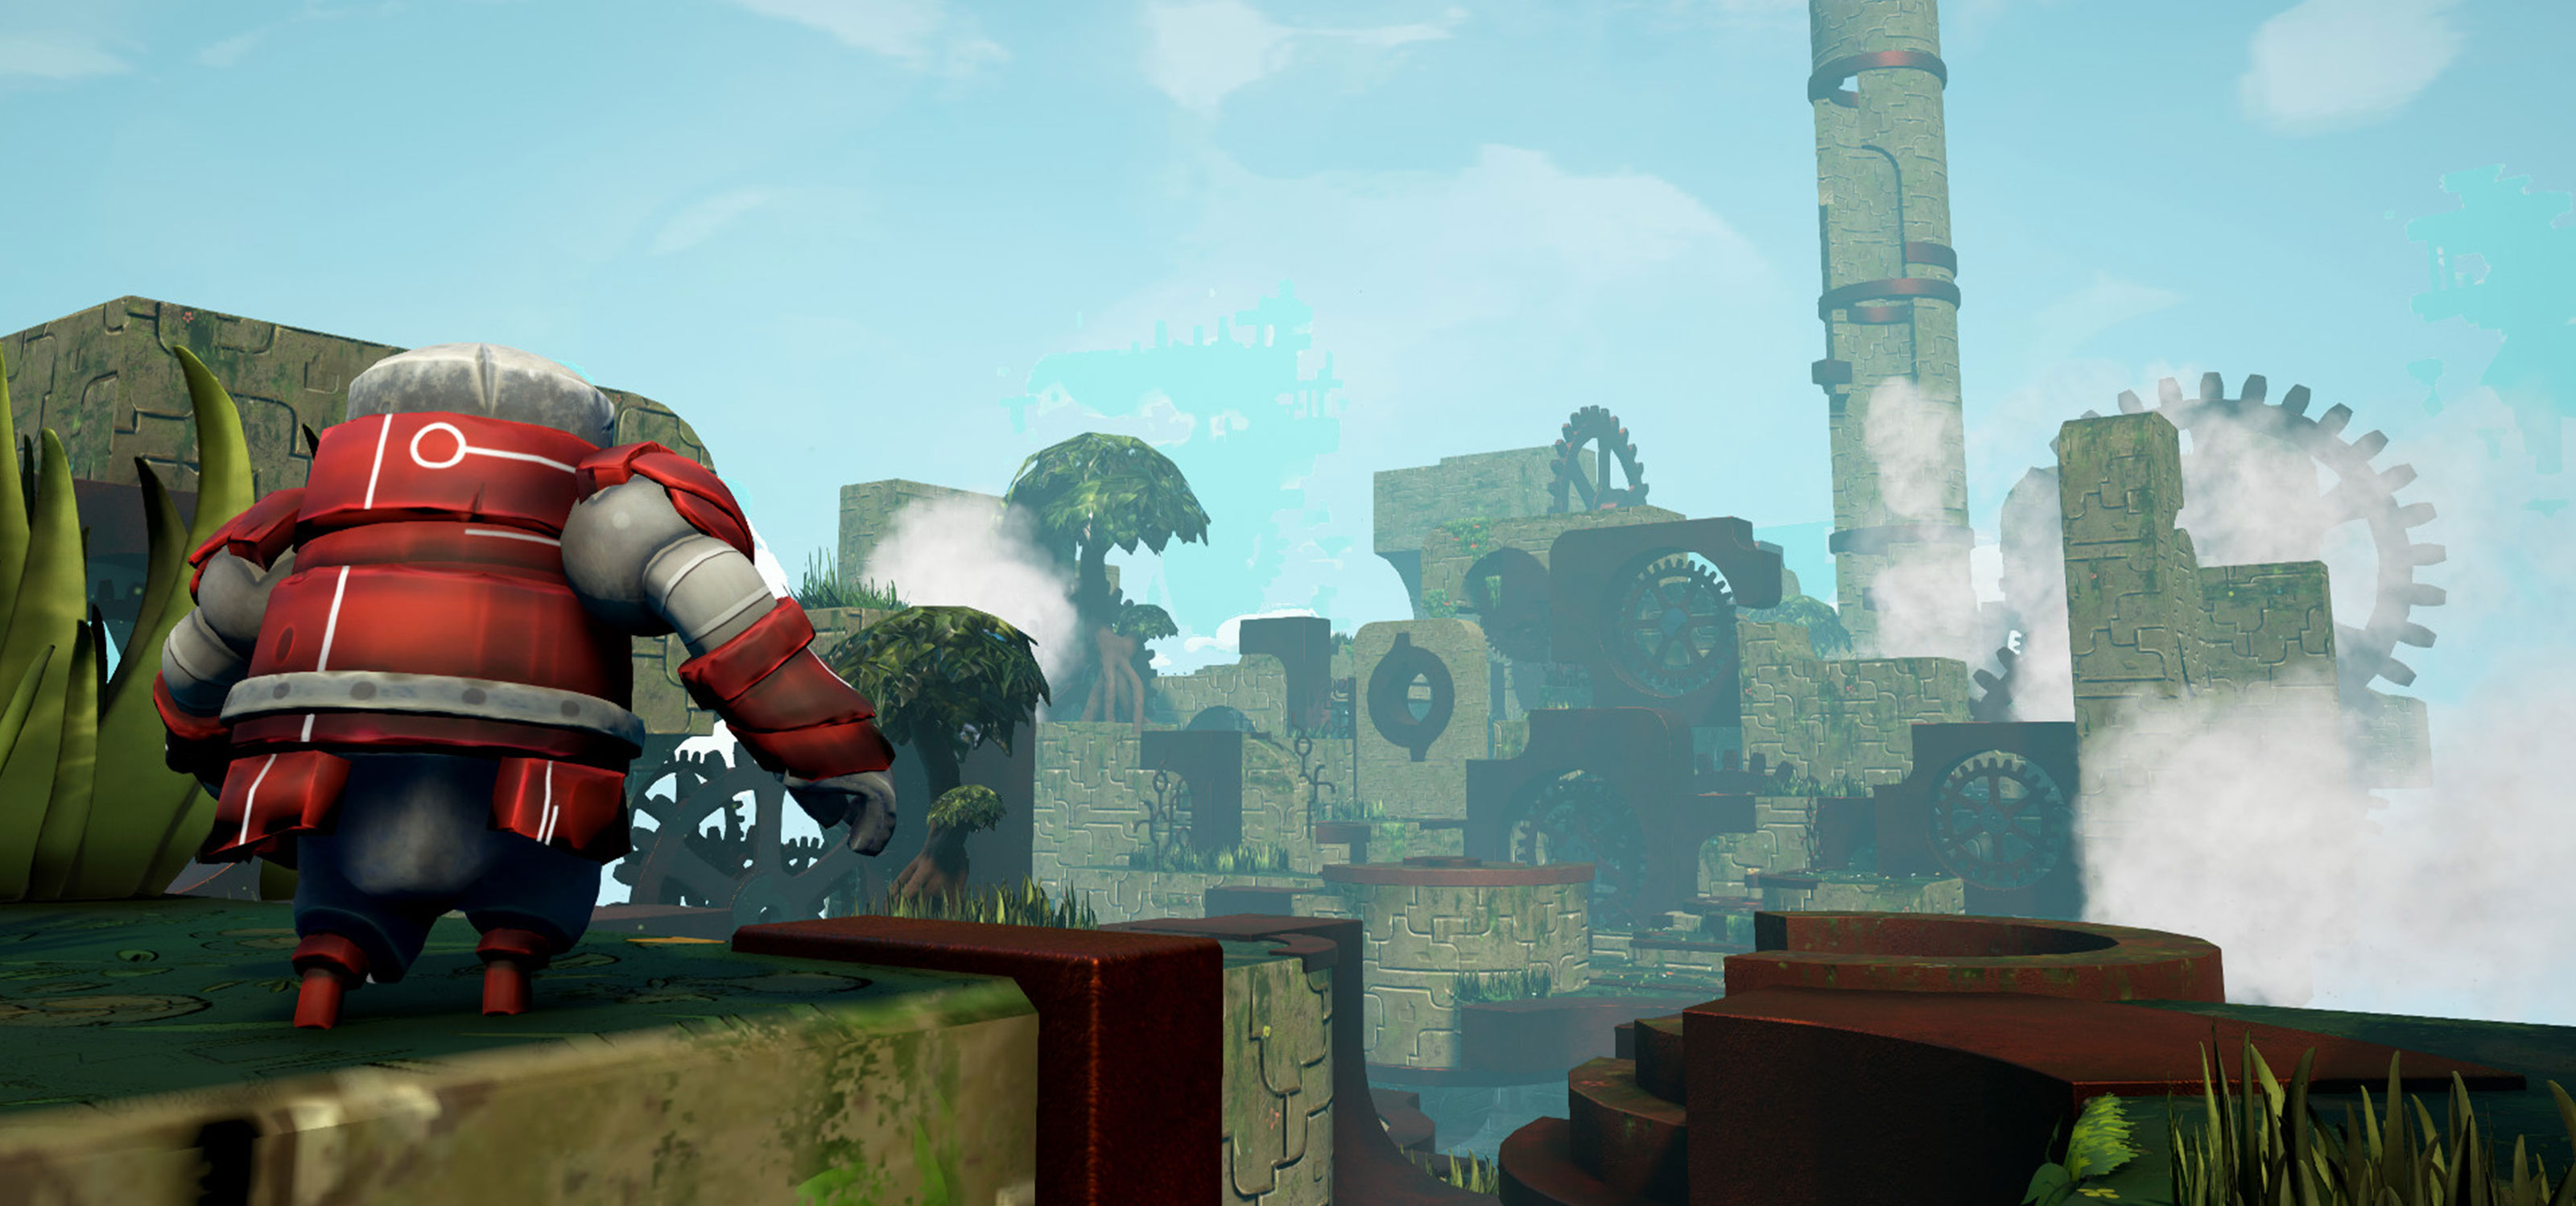 A squat, red robot seen from behind as it looks across a misty, stony landscape adorned with gears of all sizes.